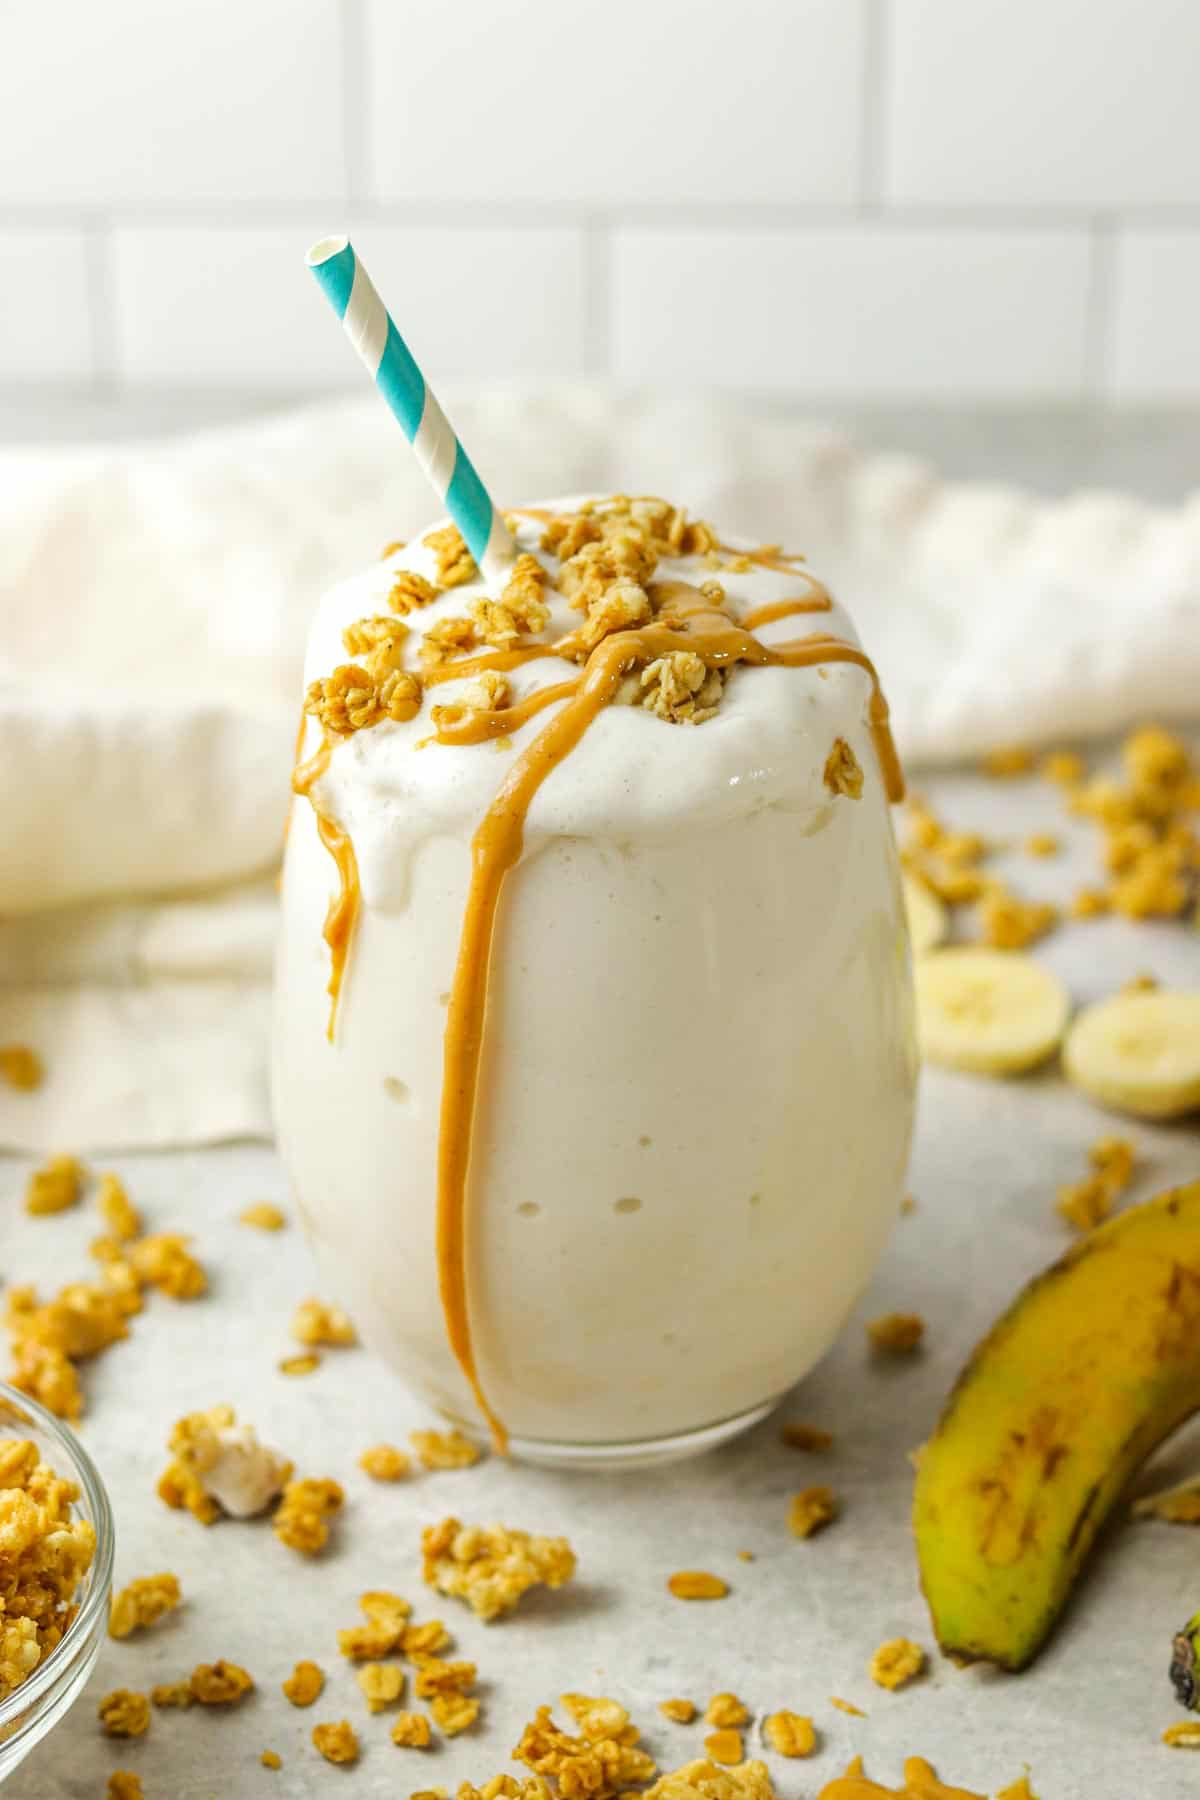 A banana protein shake with granola and peanut butter on it